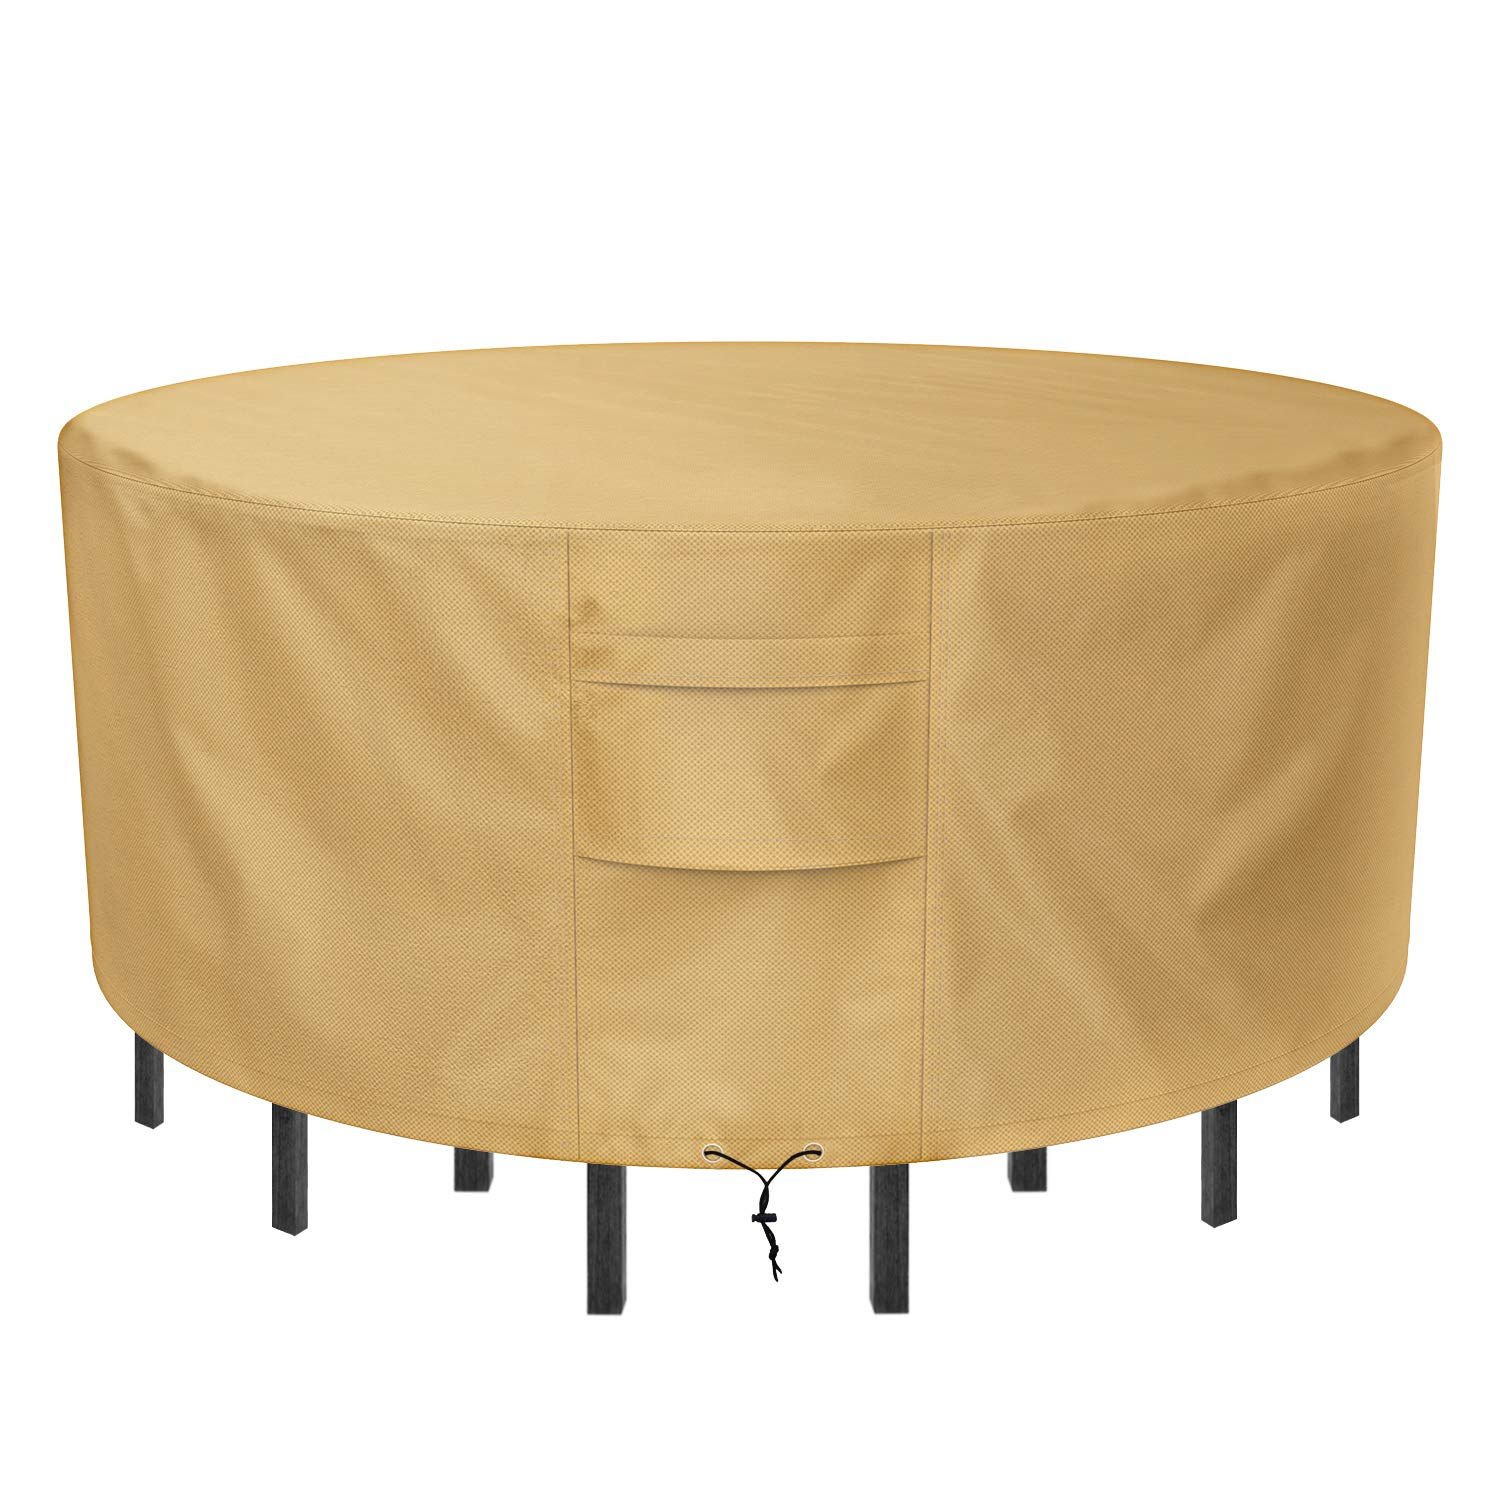 Sunkorto Round Patio Table Chair Set Cover, Patio Furniture Set Cover Waterproof Wear-resistant for Outdoor, 94 Inch Diameter, Light Brown